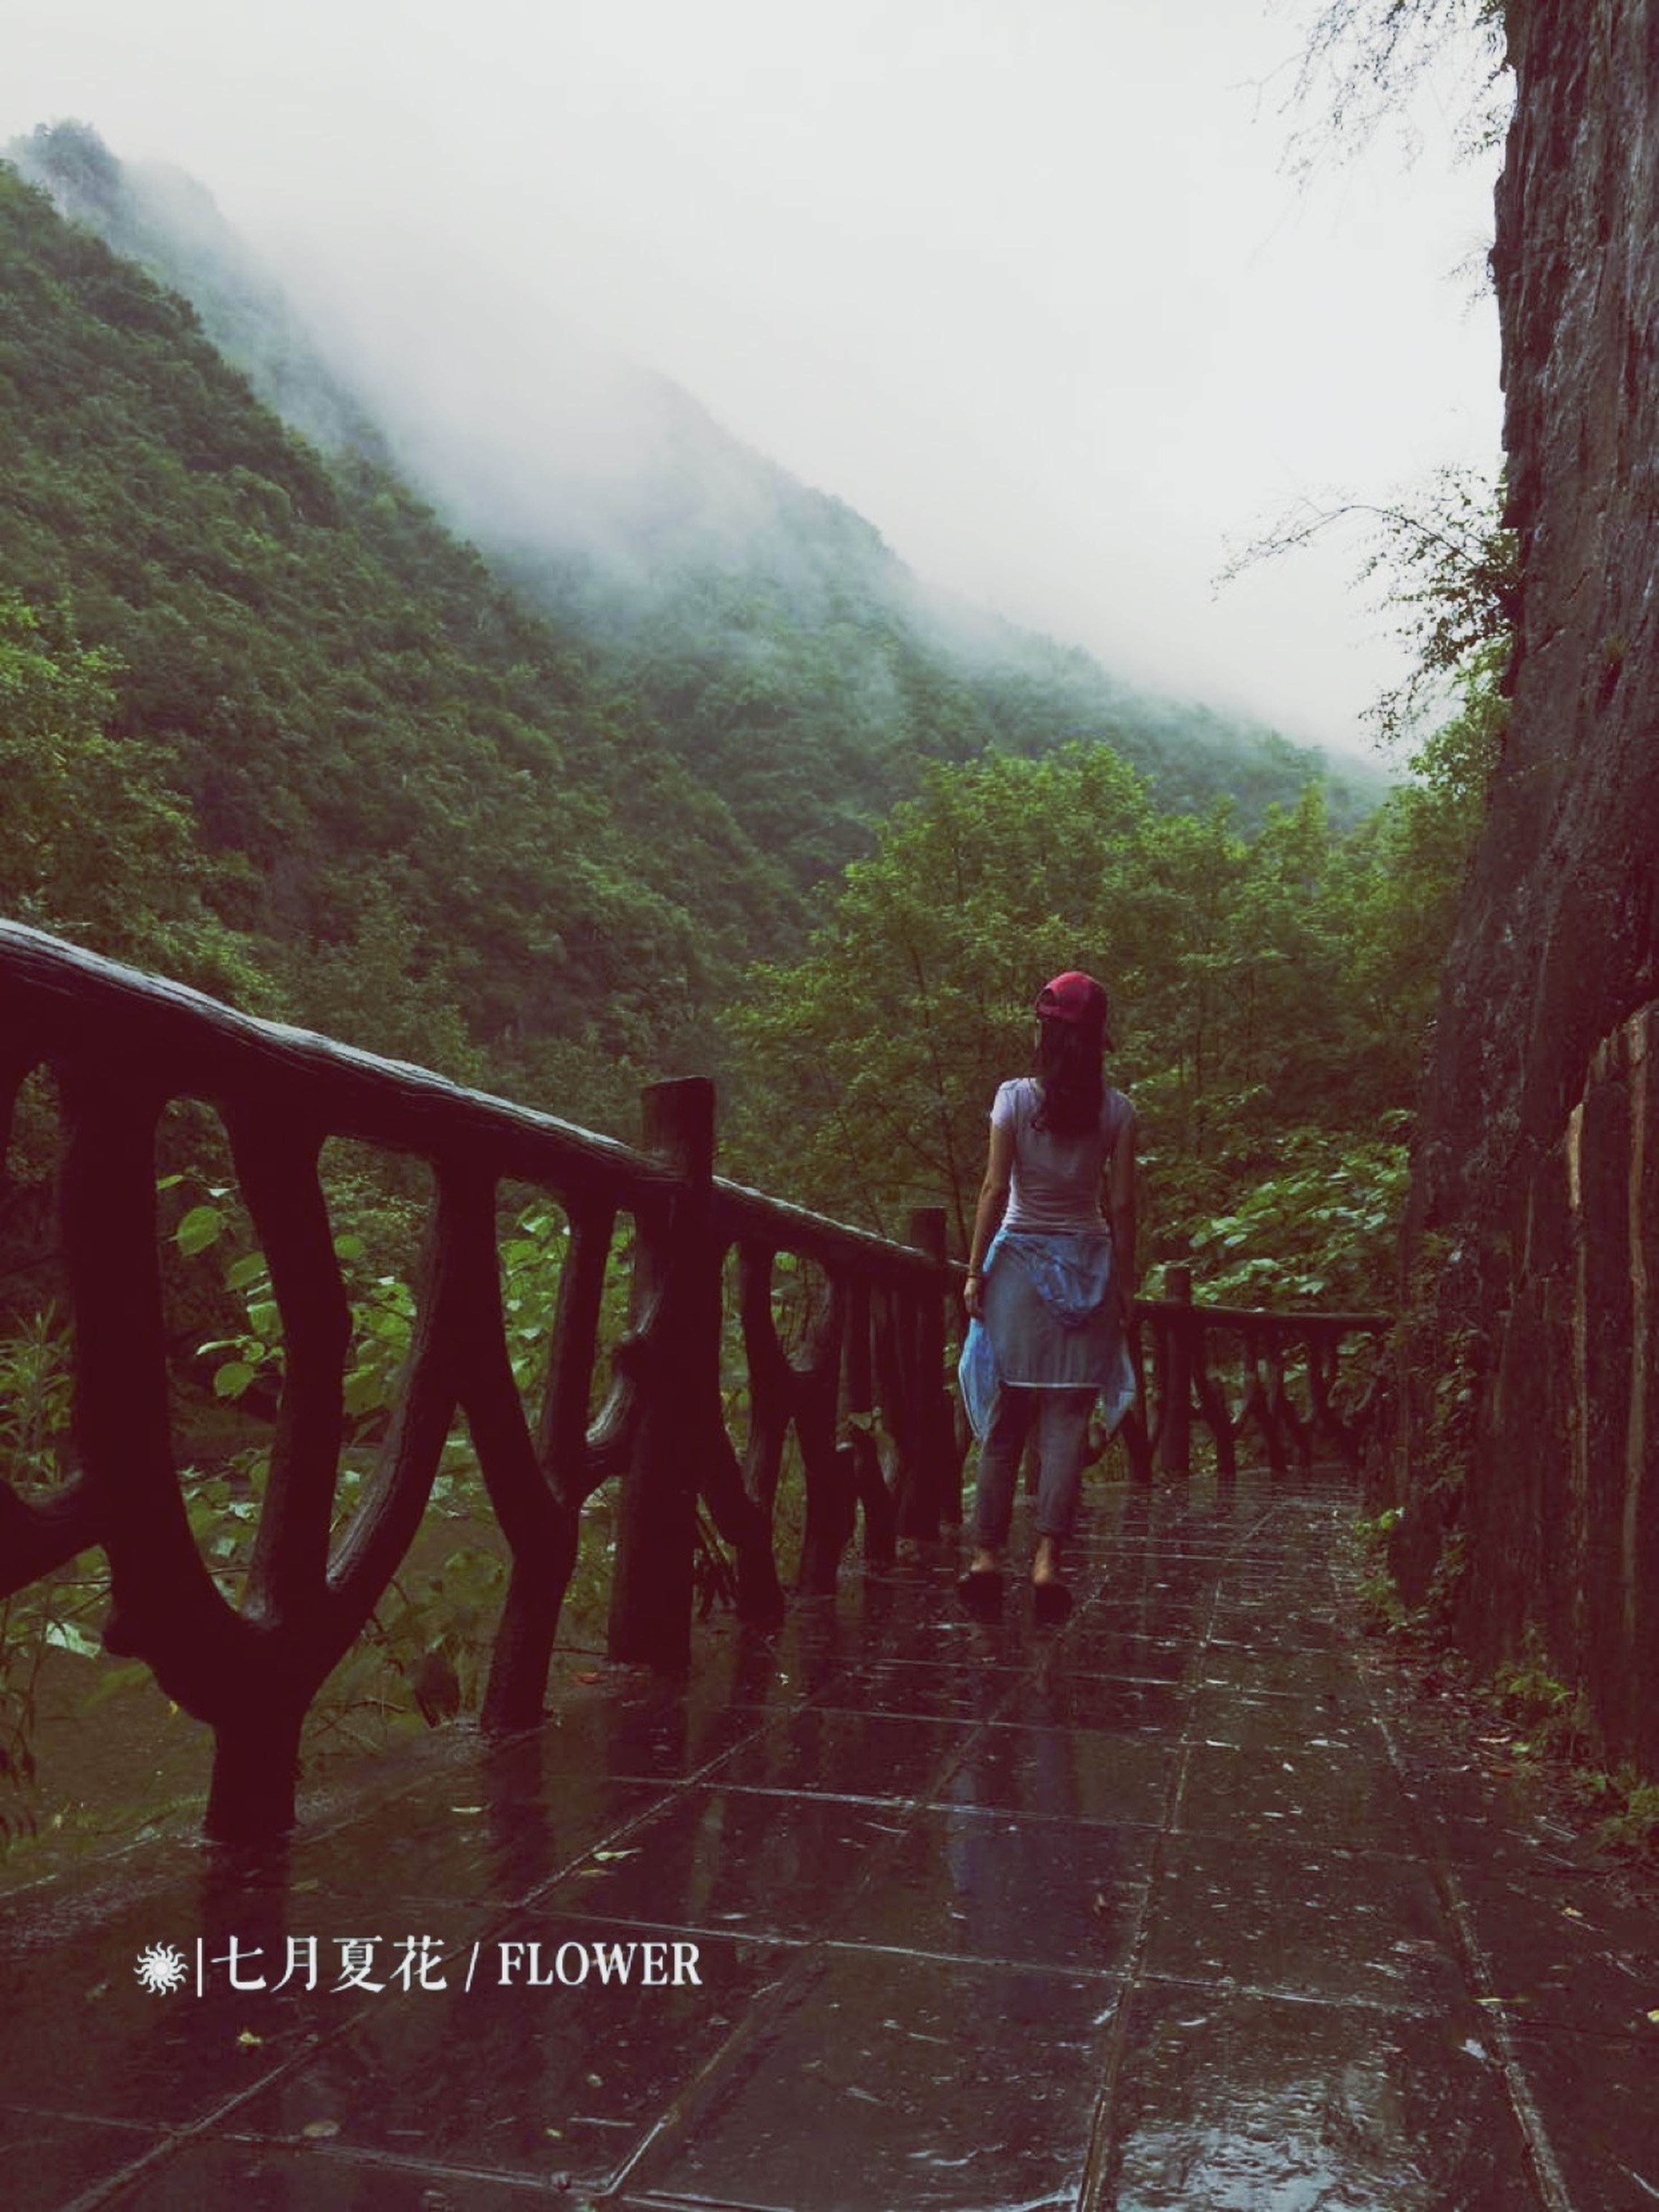 mountain, lifestyles, full length, leisure activity, railing, rear view, tree, water, casual clothing, tranquility, nature, scenics, beauty in nature, tranquil scene, standing, footbridge, fog, forest